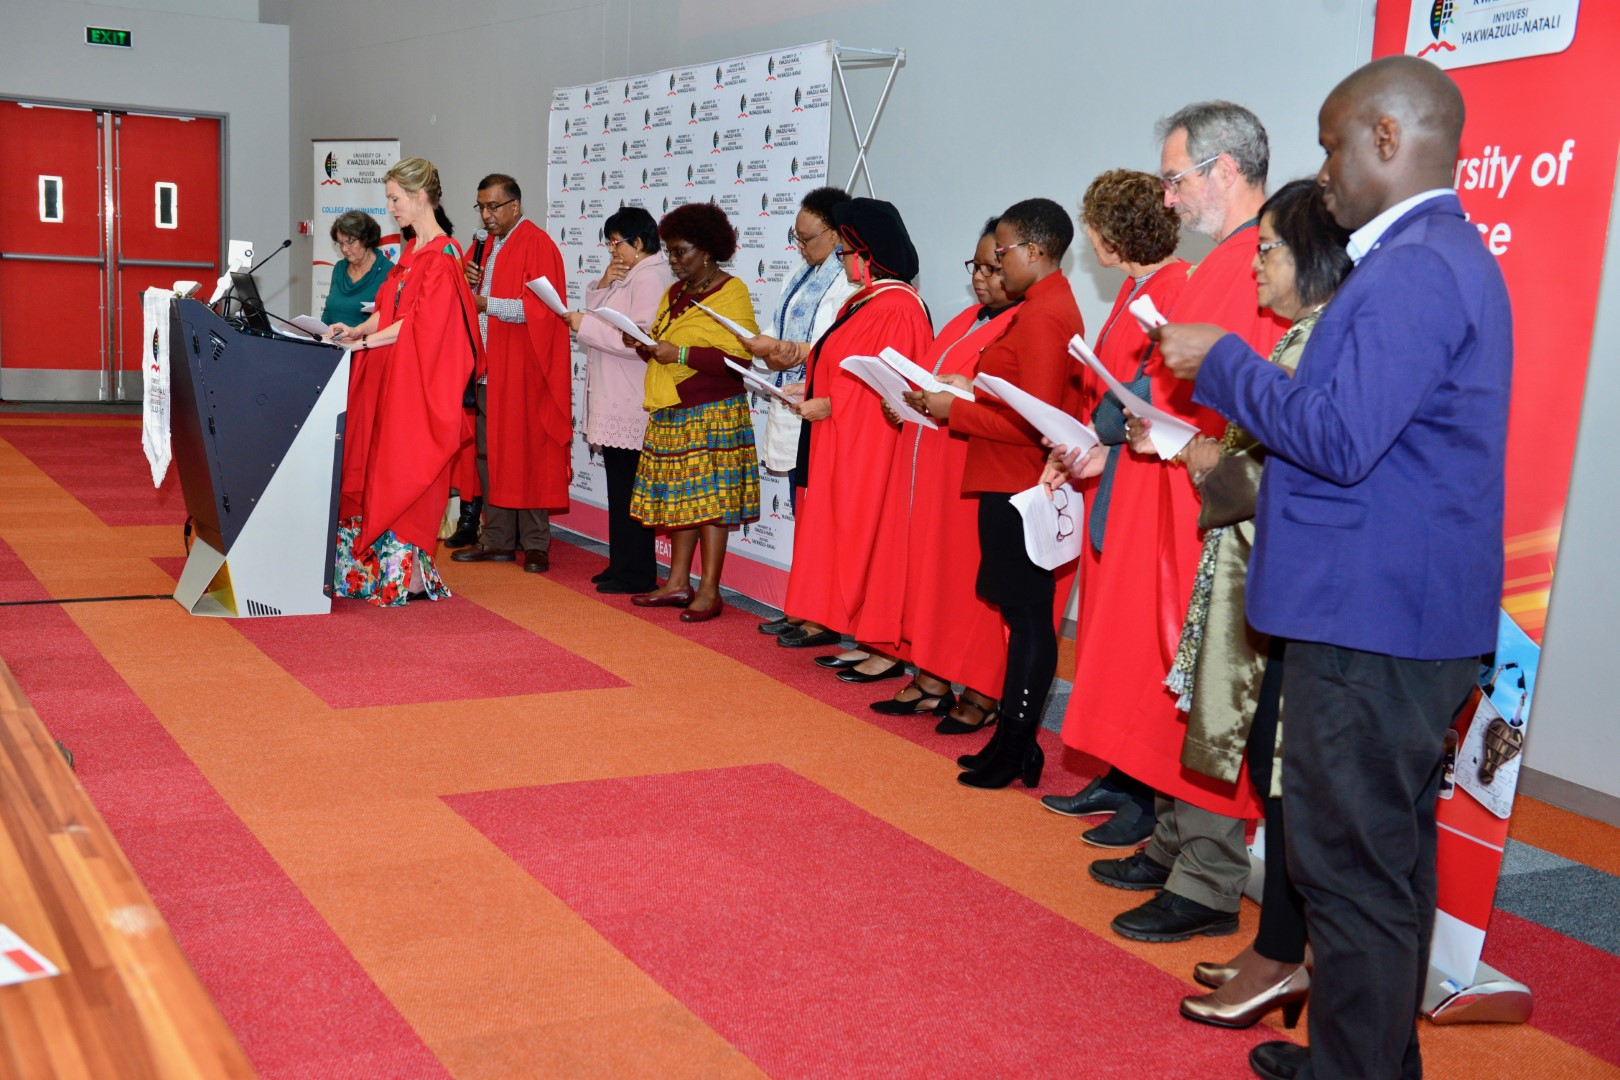 Poetry recited by UKZN academics as part of the lecture on poetry in professional learning